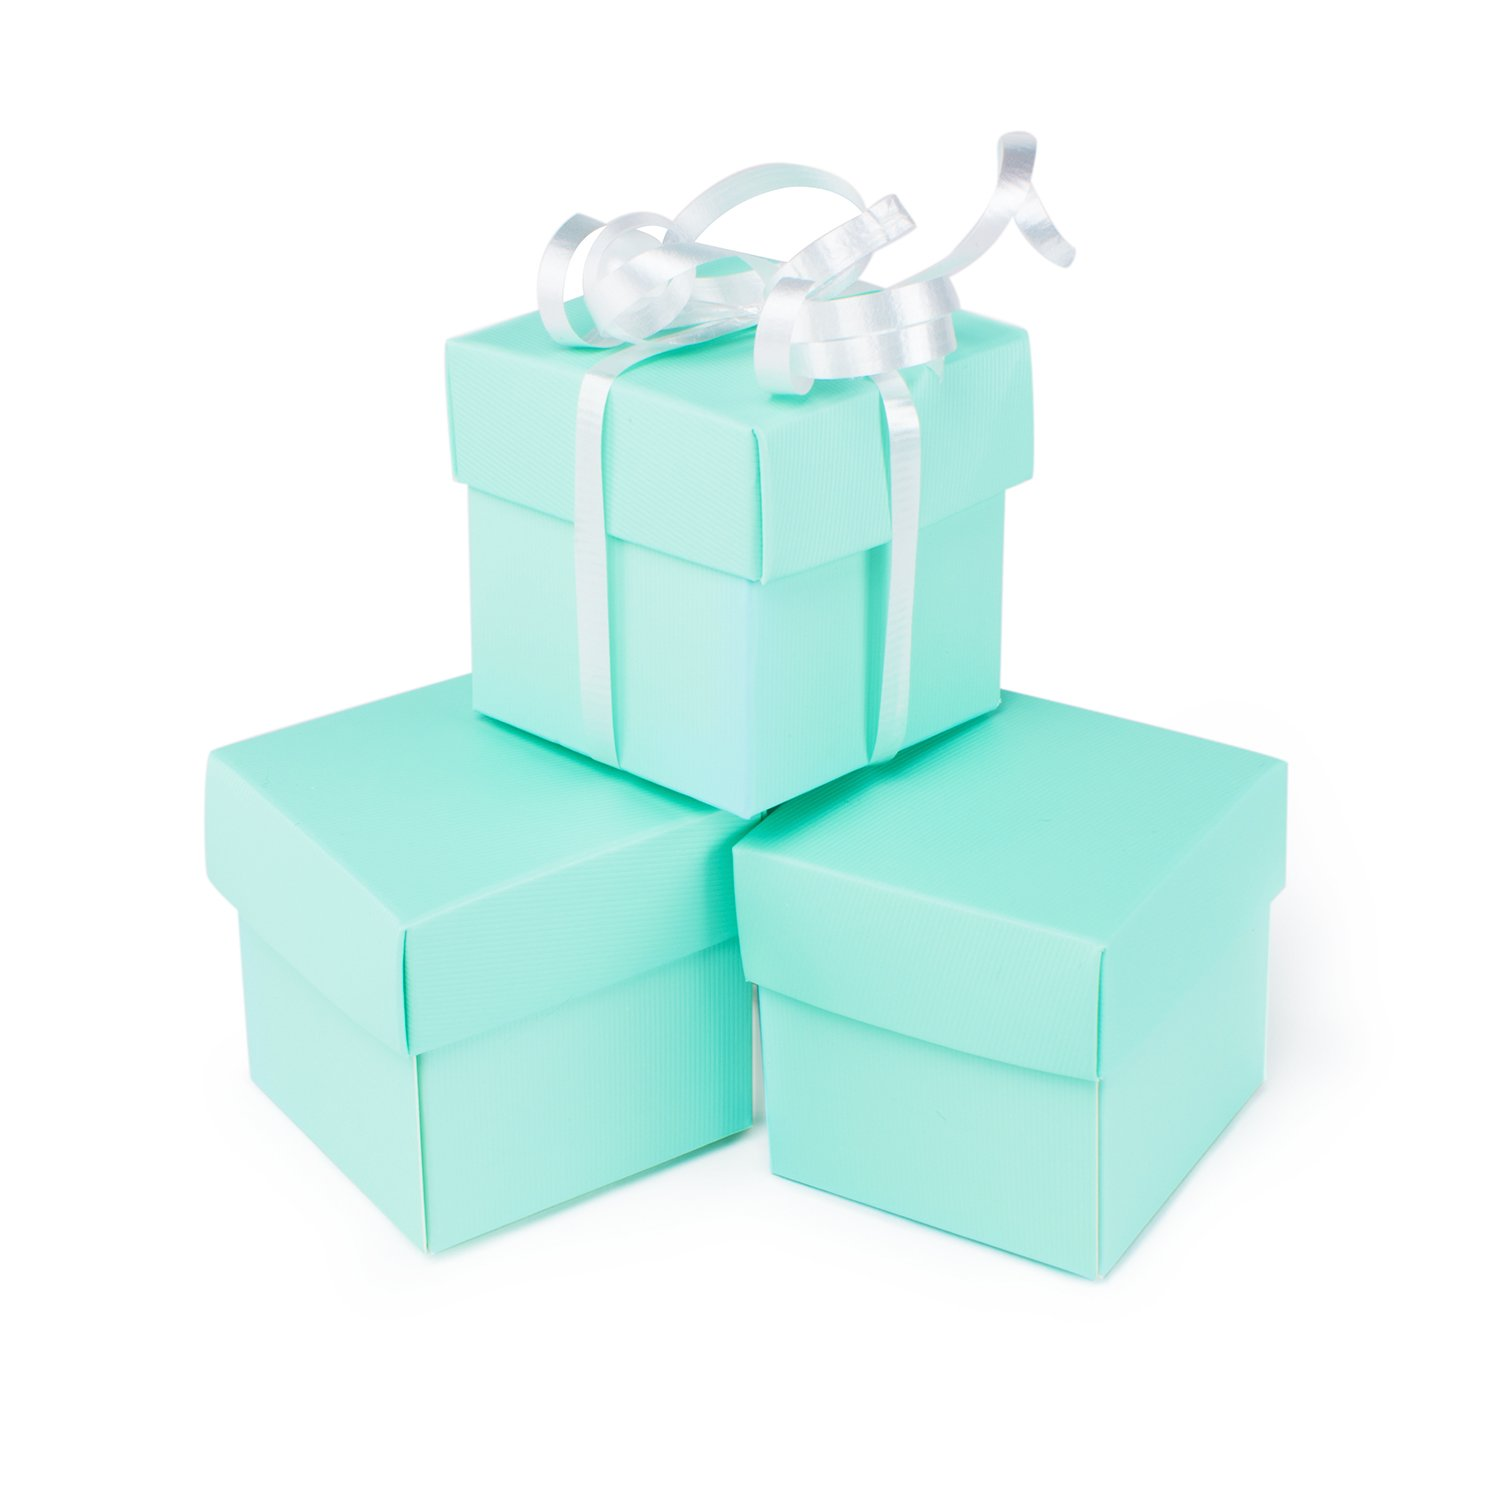 """Mini Small Square Cube Robin's Egg Blue Gift Boxes with Lids for Party Favors, Decoration, Weddings, Birthdays, and more. 2"""" x 2"""" x 2"""" in Size. (10 Pack)"""